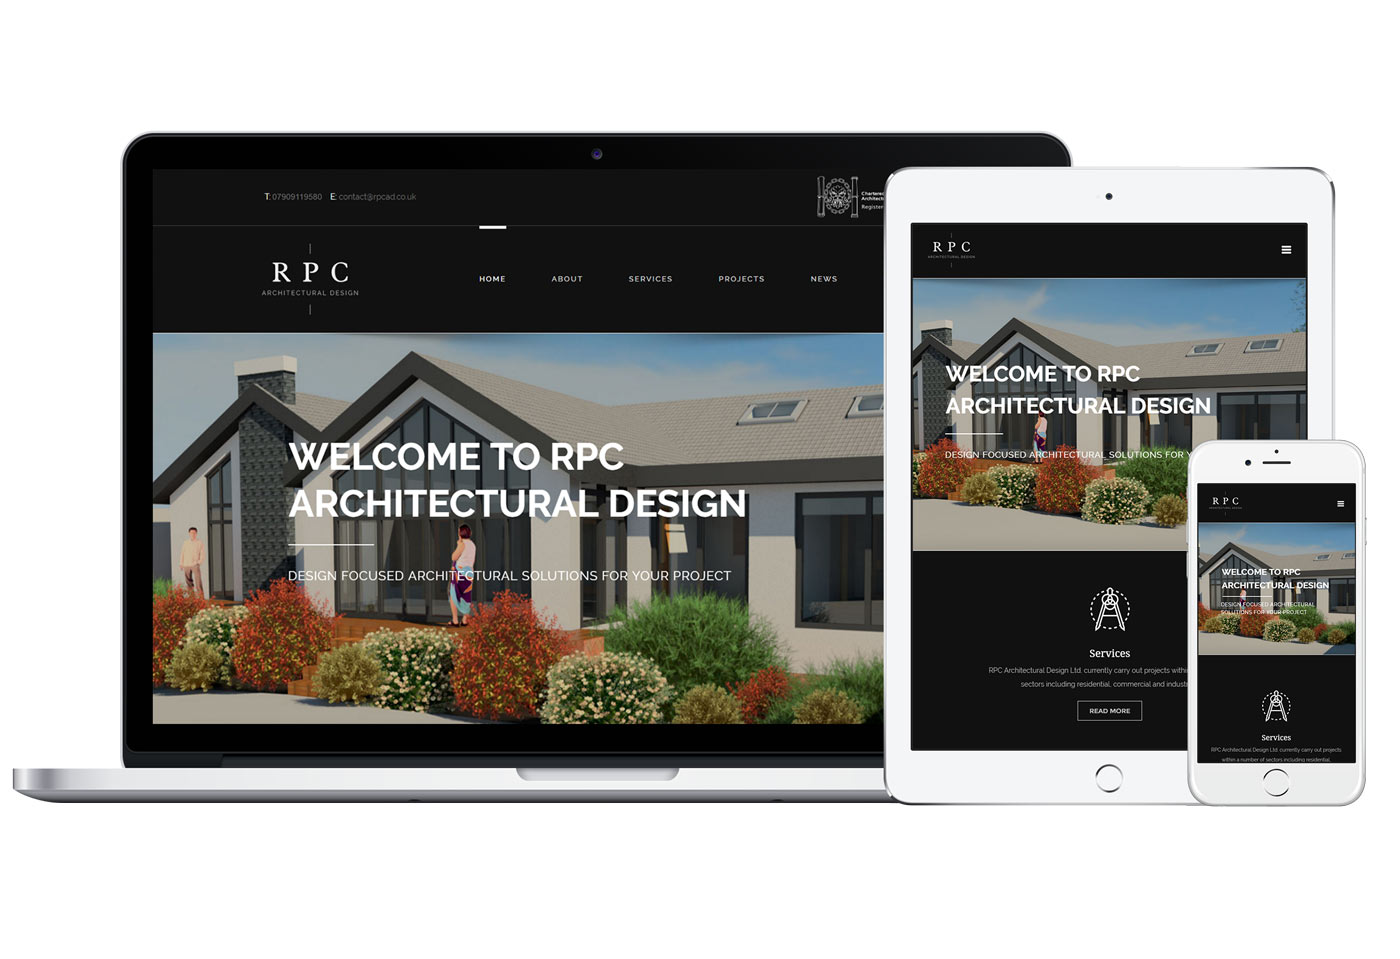 Rpc architectural design website design responsive for Architectural websites